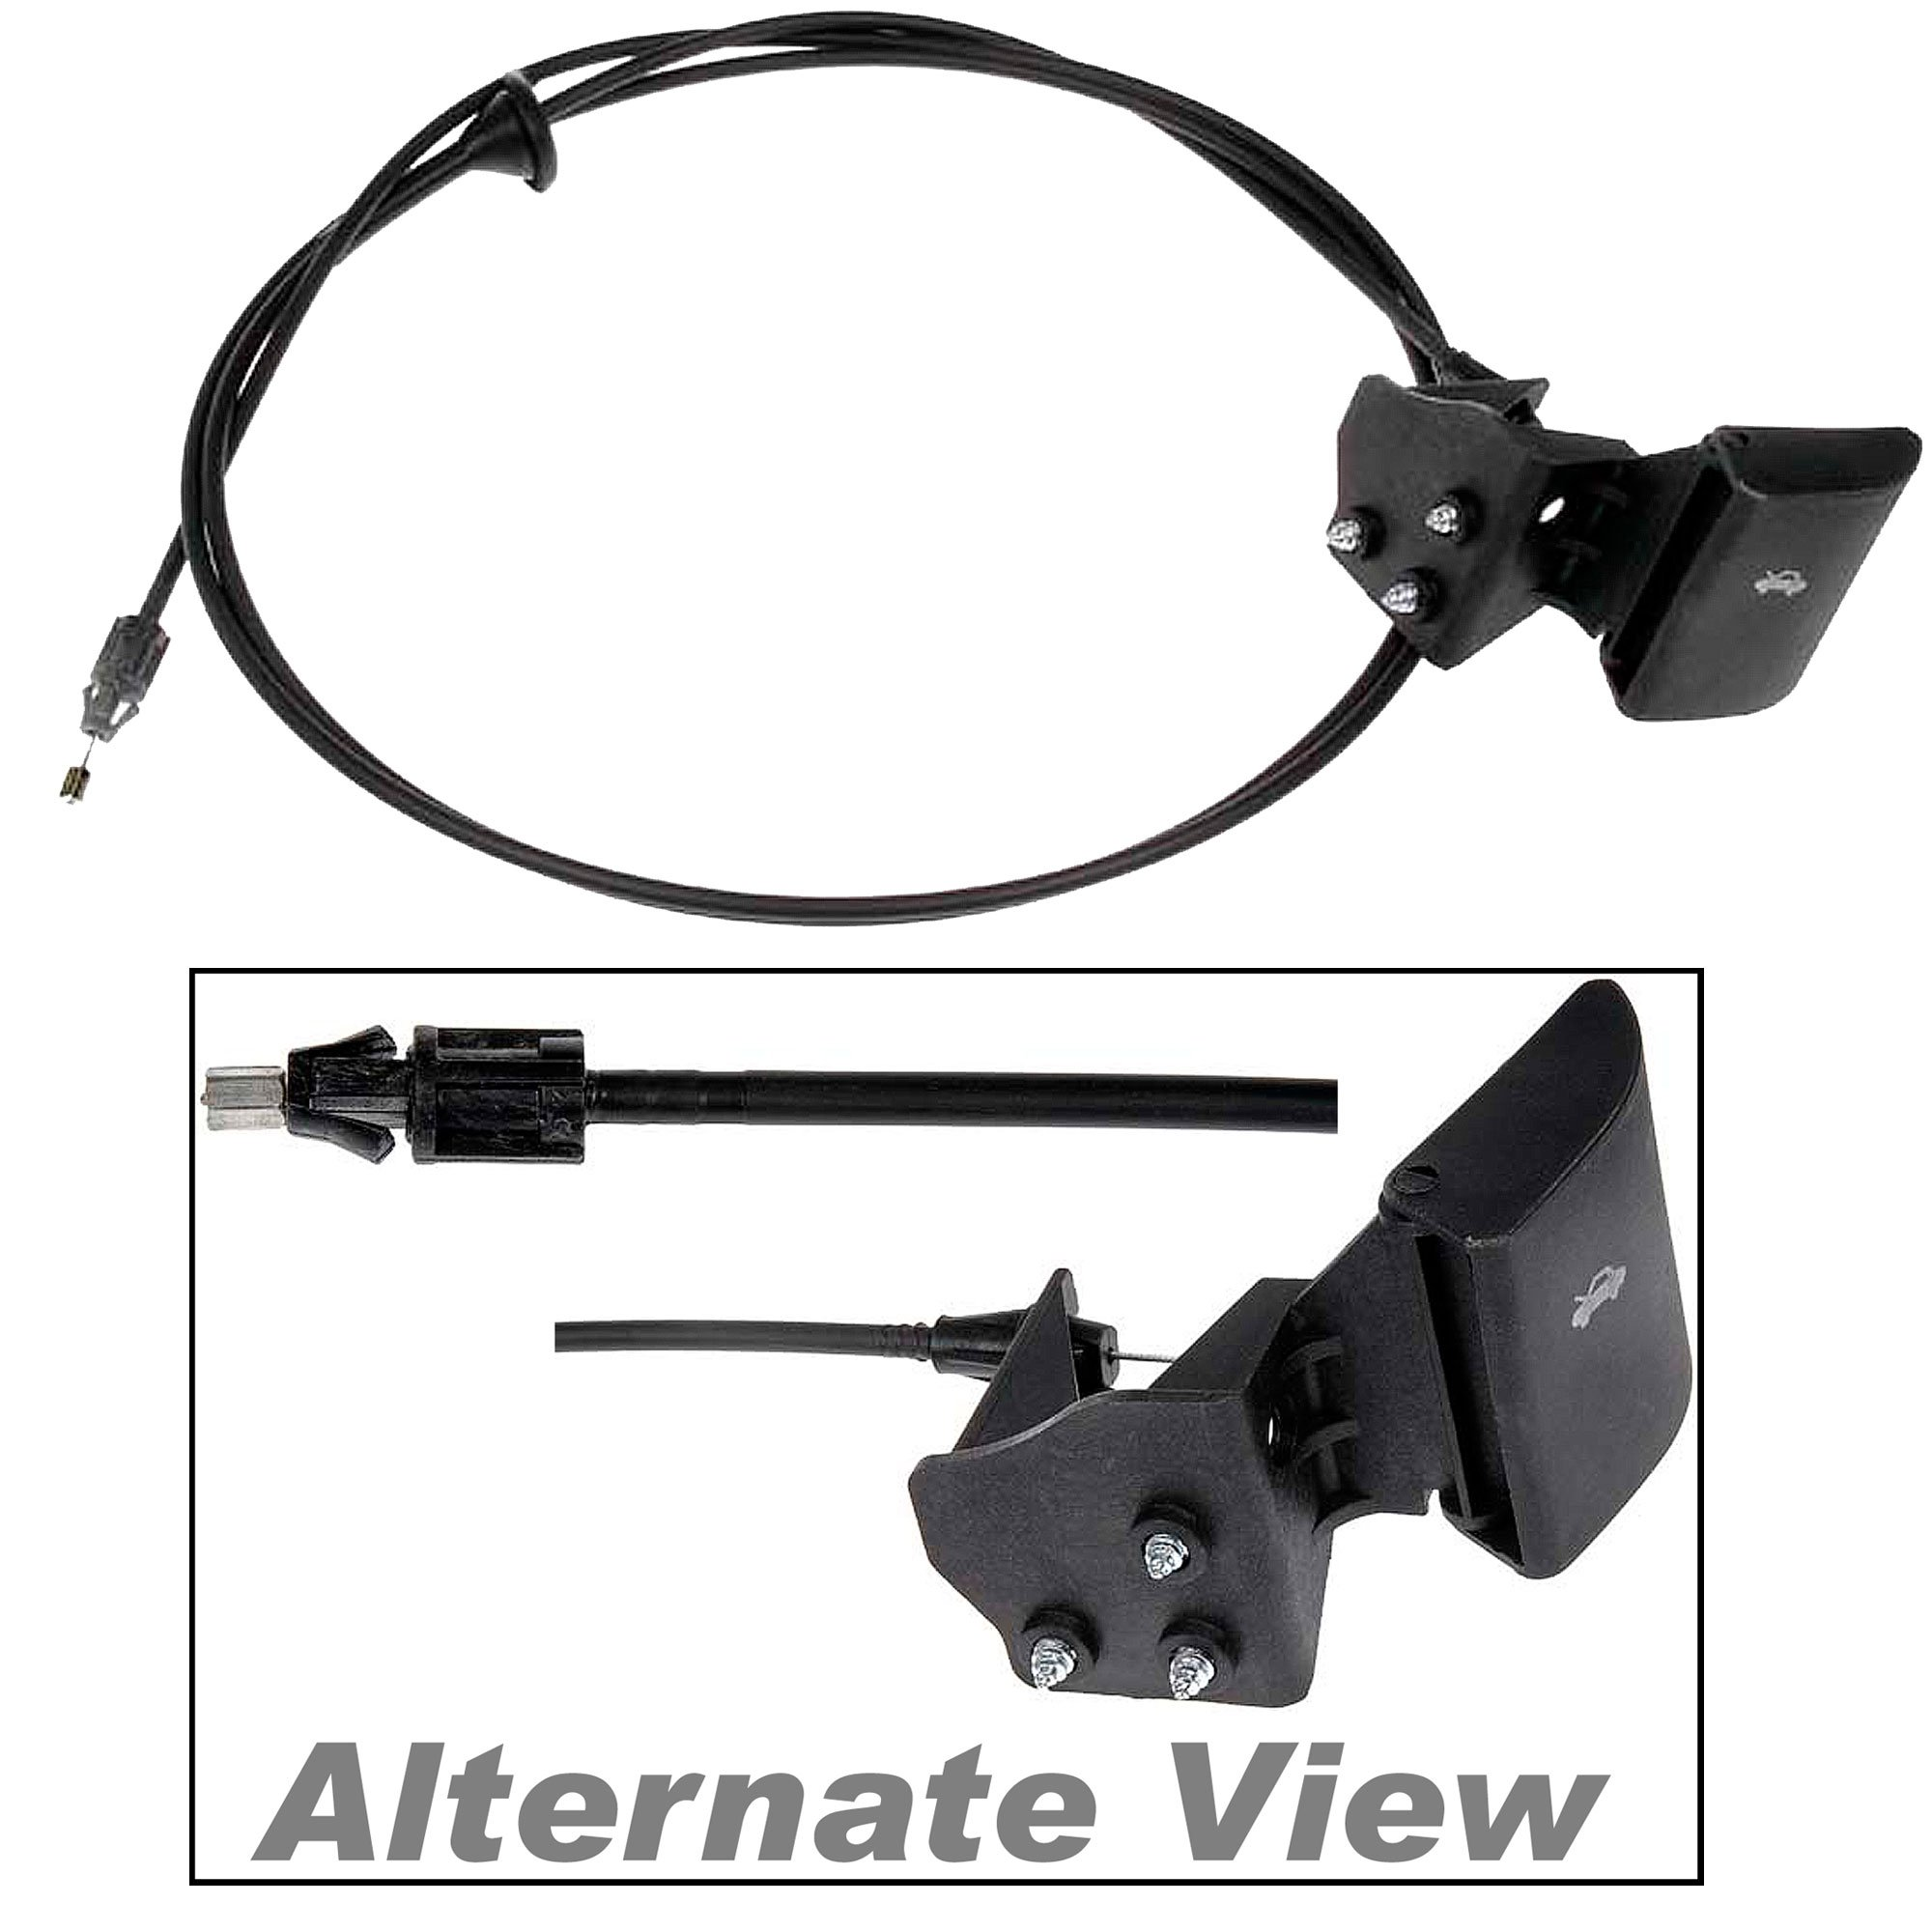 APDTY 023198 Hood Release Cable With Handle Fits 2006-2009 Jeep Commander / 2005-2009 Jeep Grand Cherokee (Replaces 55394495AB, 55394495AC, 55394495AD, 55394495AA)